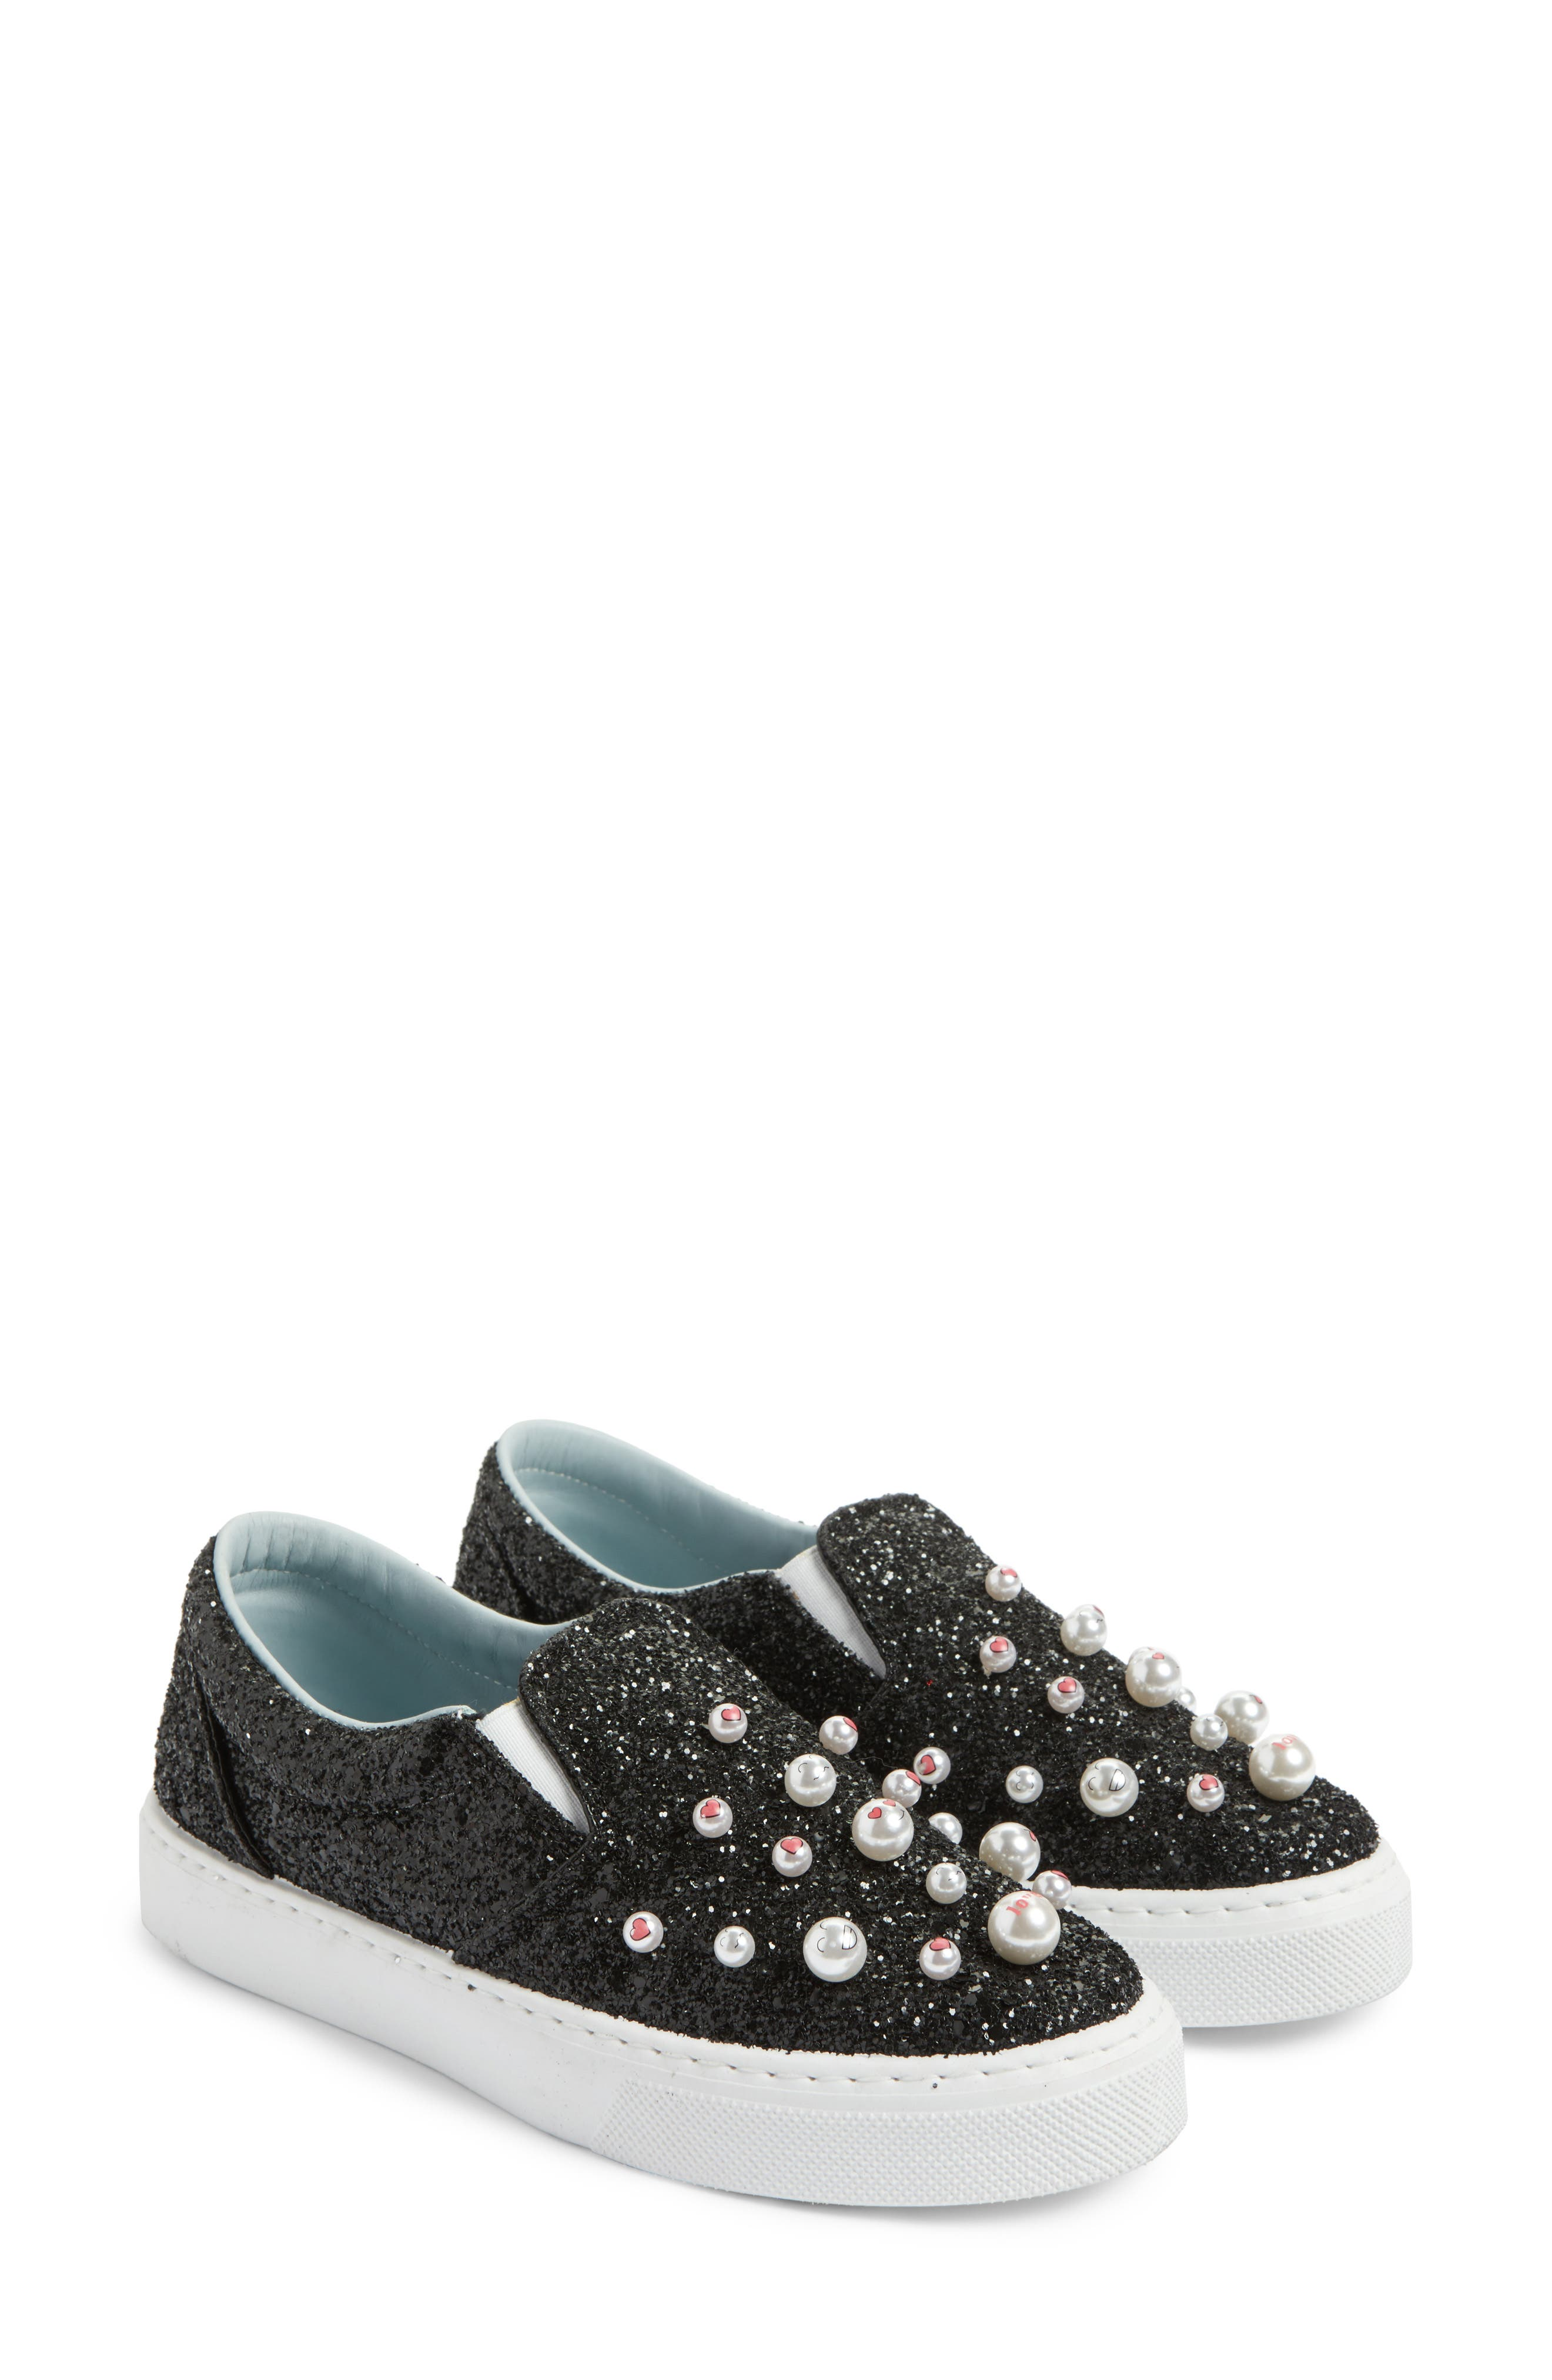 Candies Embellished Slip-On Sneaker,                             Main thumbnail 1, color,                             001